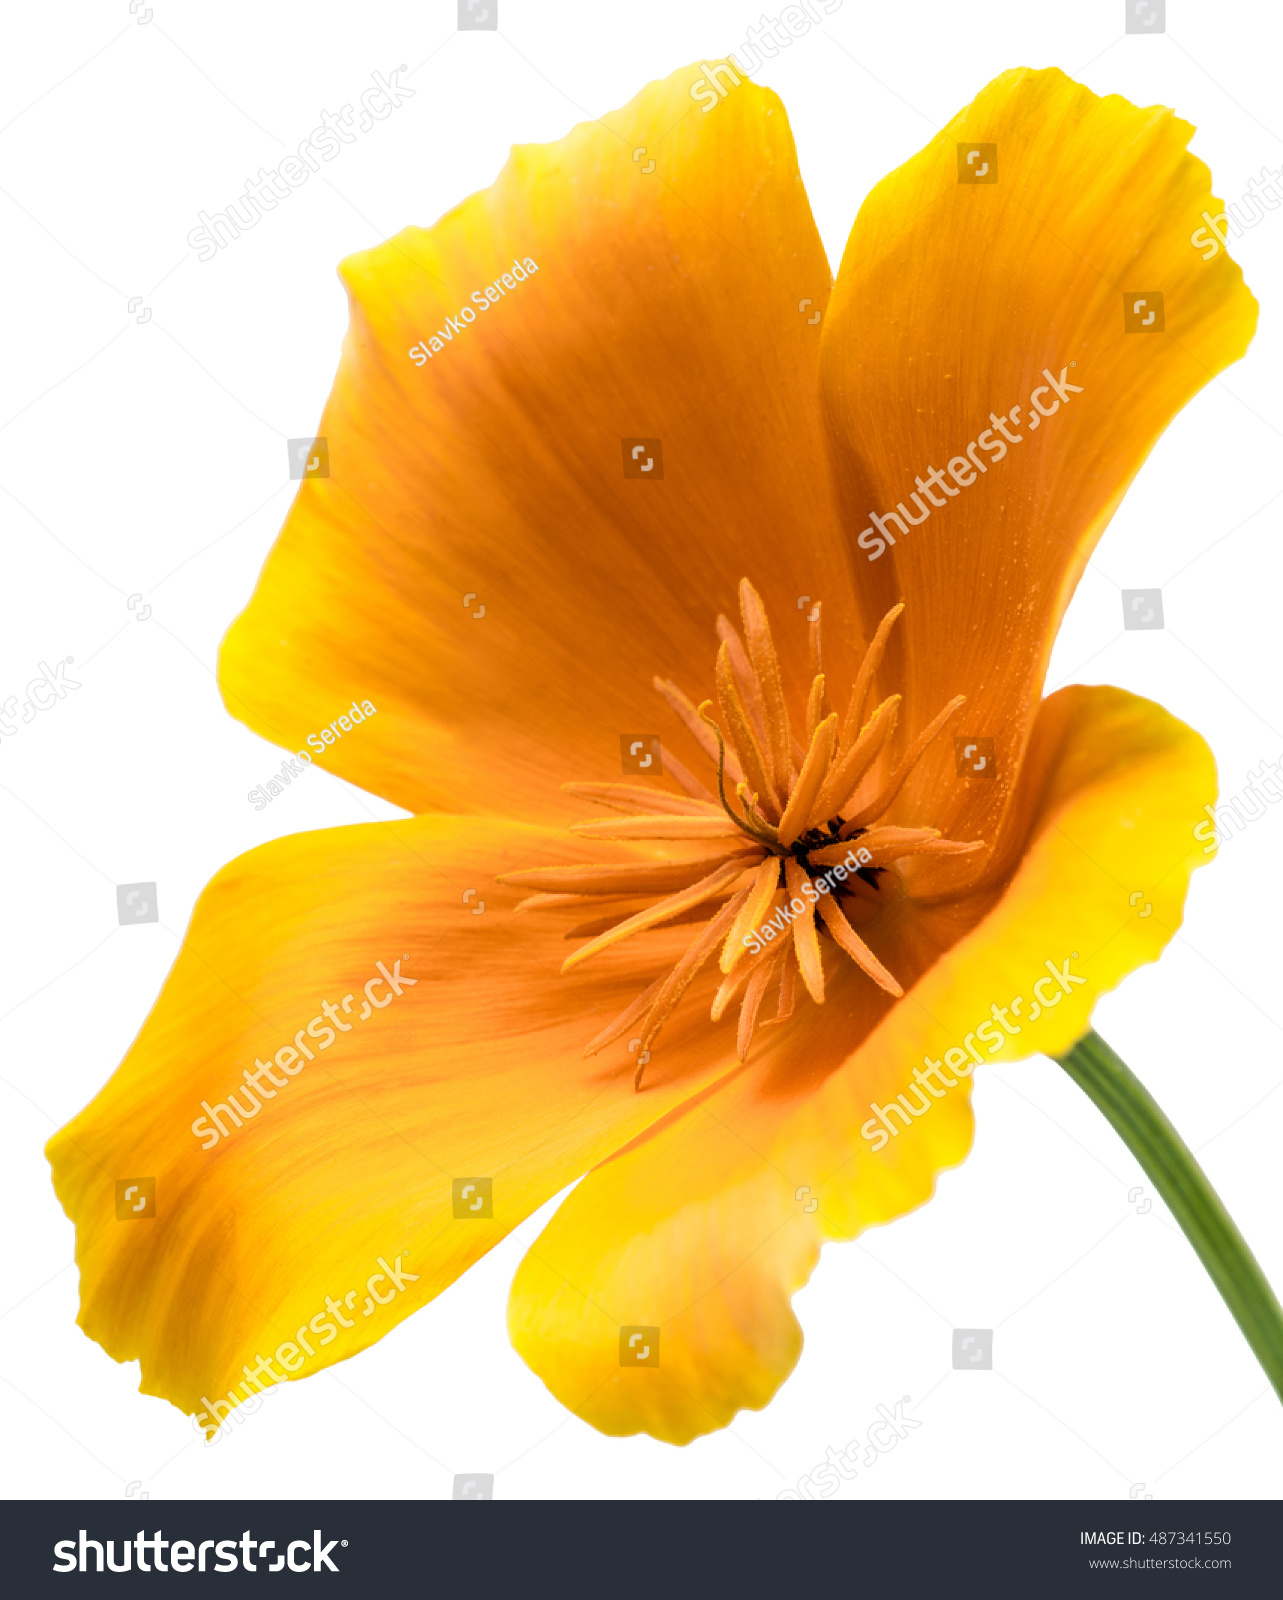 Flower Eschscholzia Californica California Poppy Golden Poppy